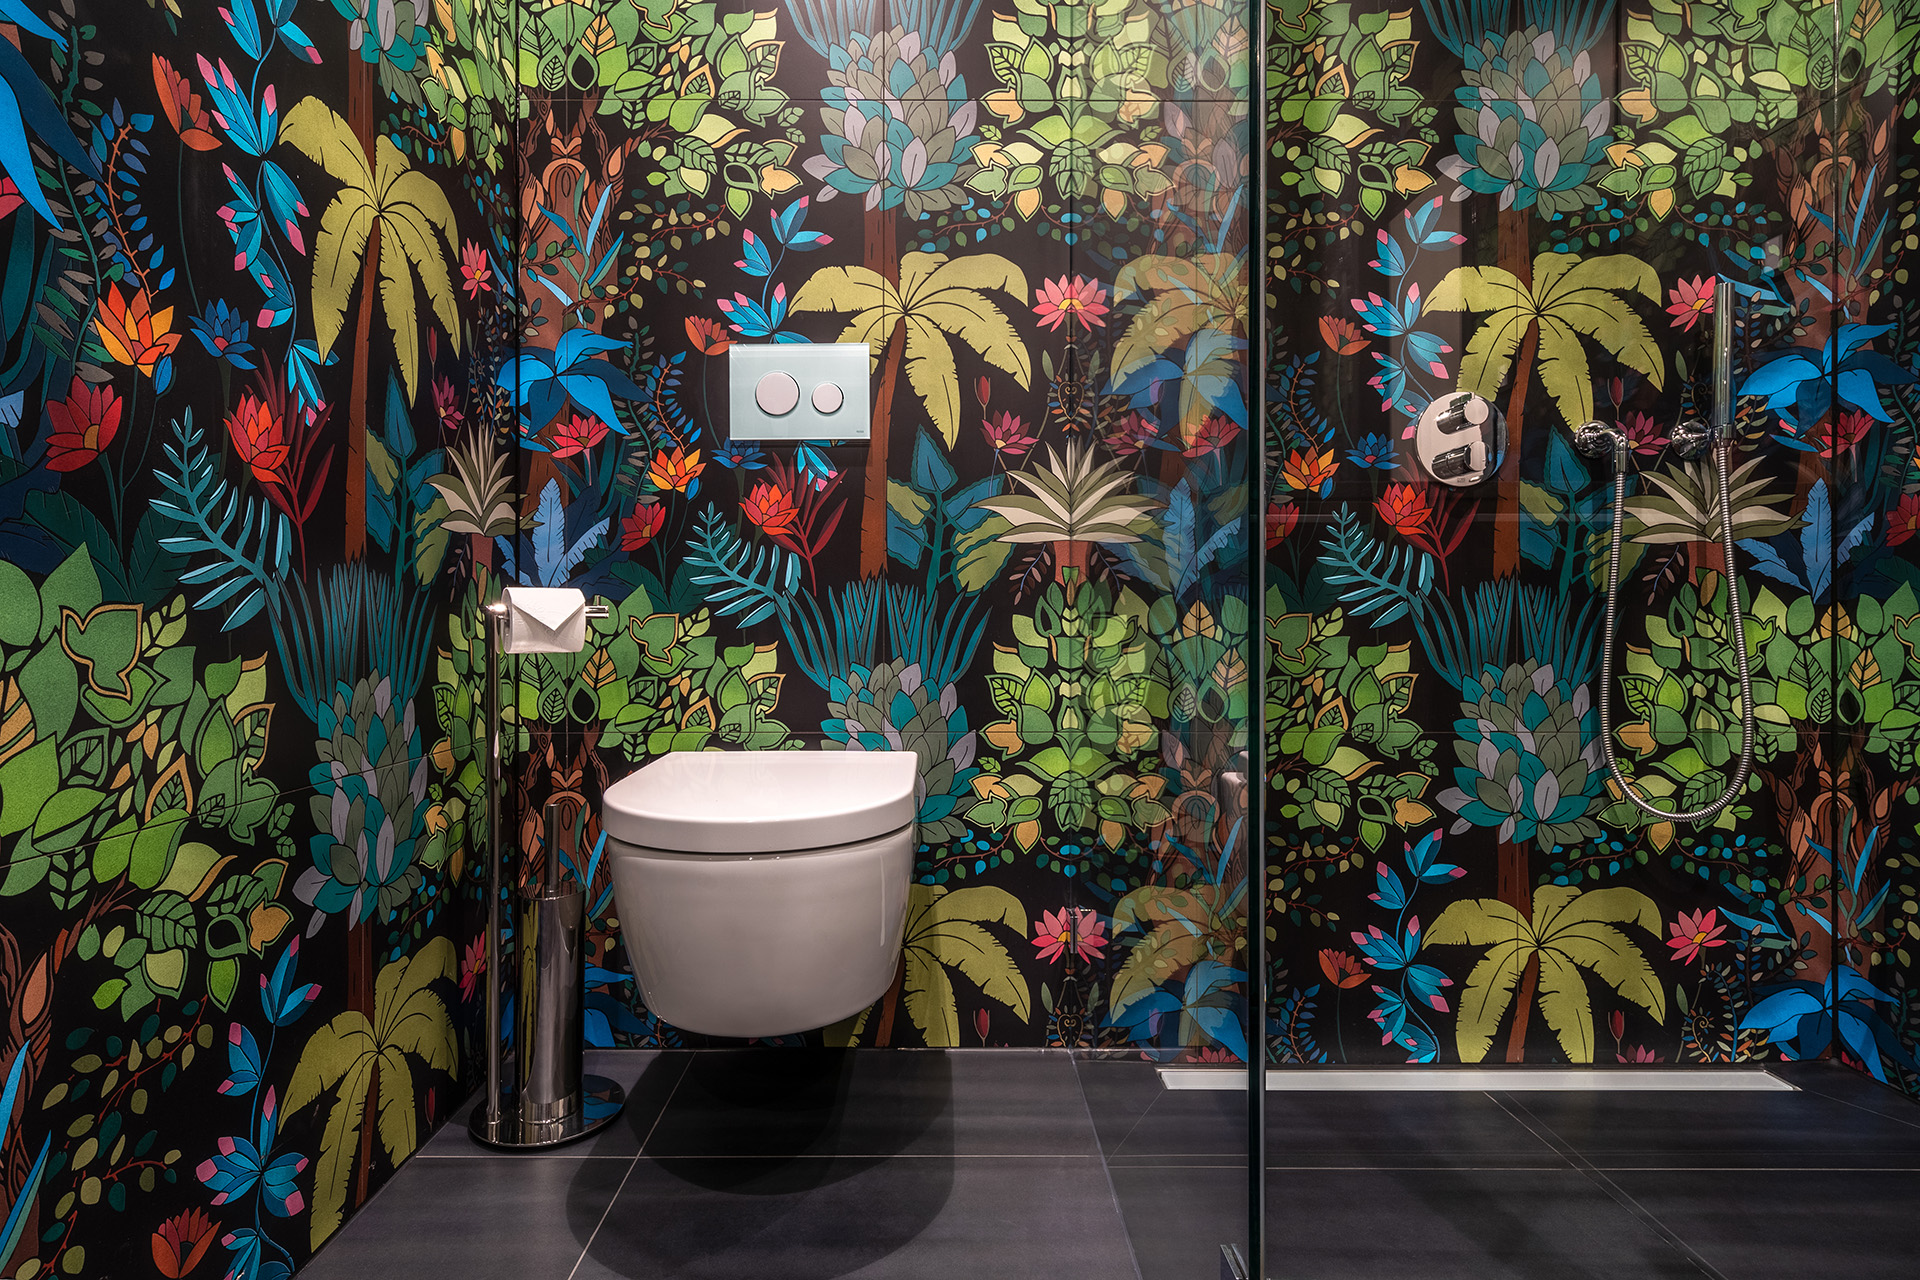 Not only popular in fashion: the wallpaper with floral prints makes the morning wash a joyful experience of nature.